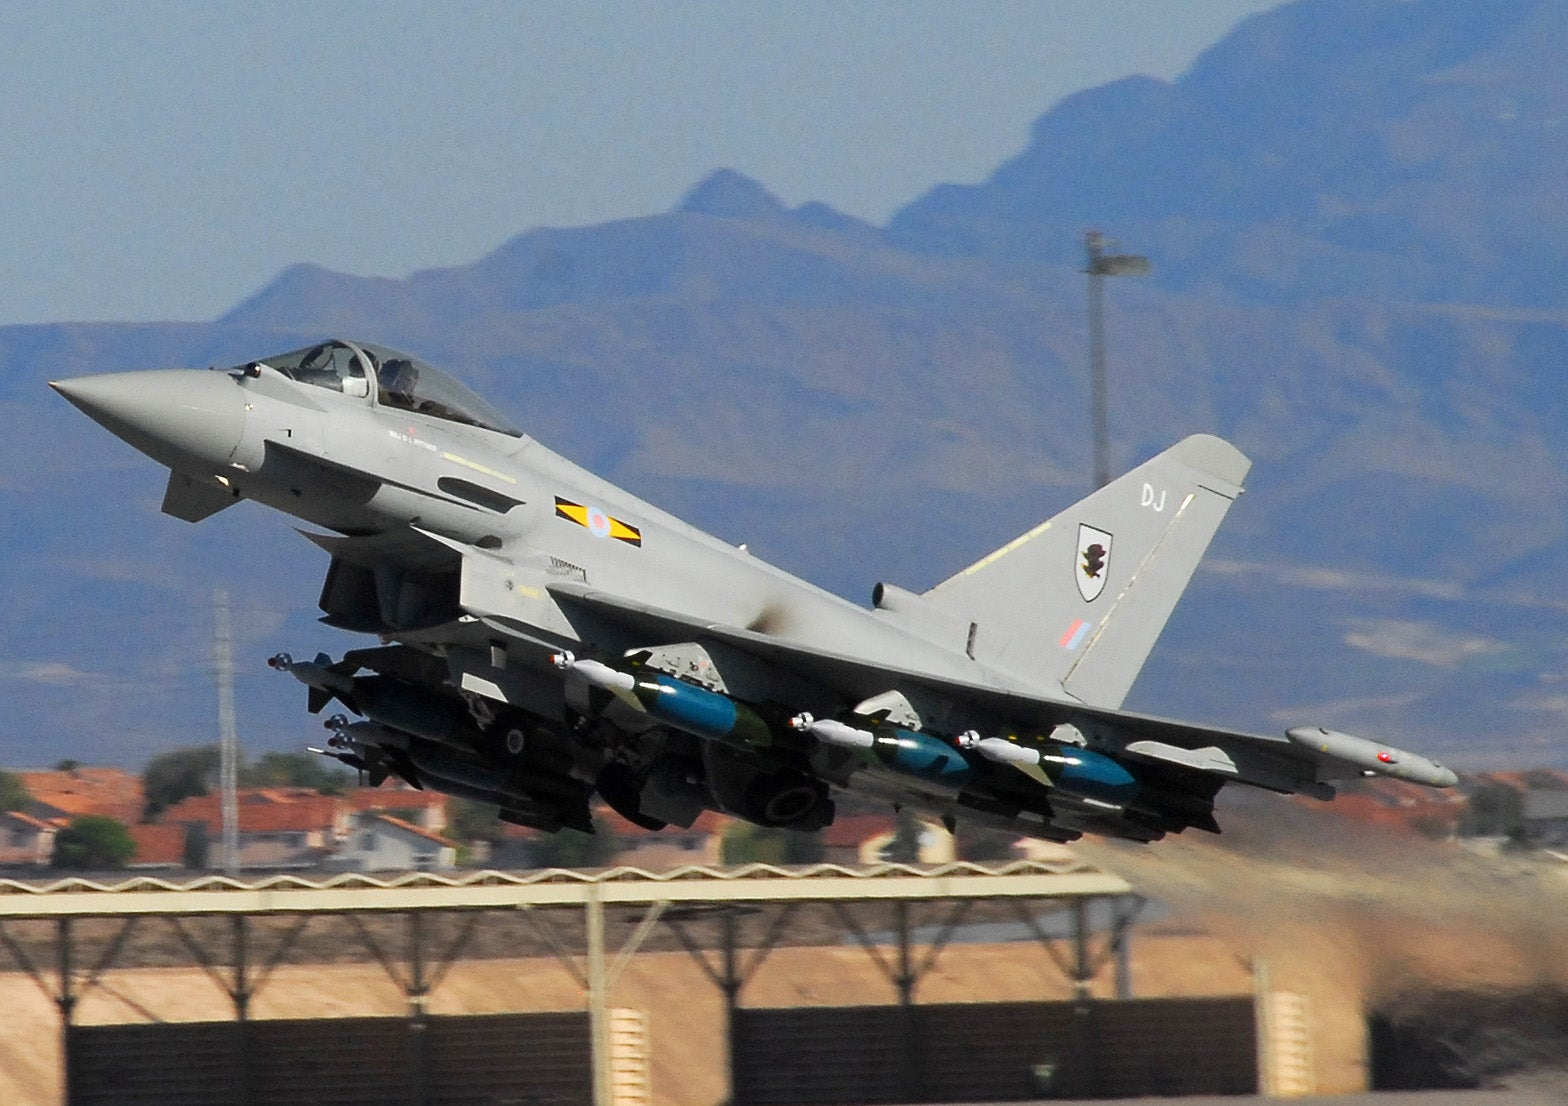 All the Military Gear the UK's Buying on Its Defence Spending Spree